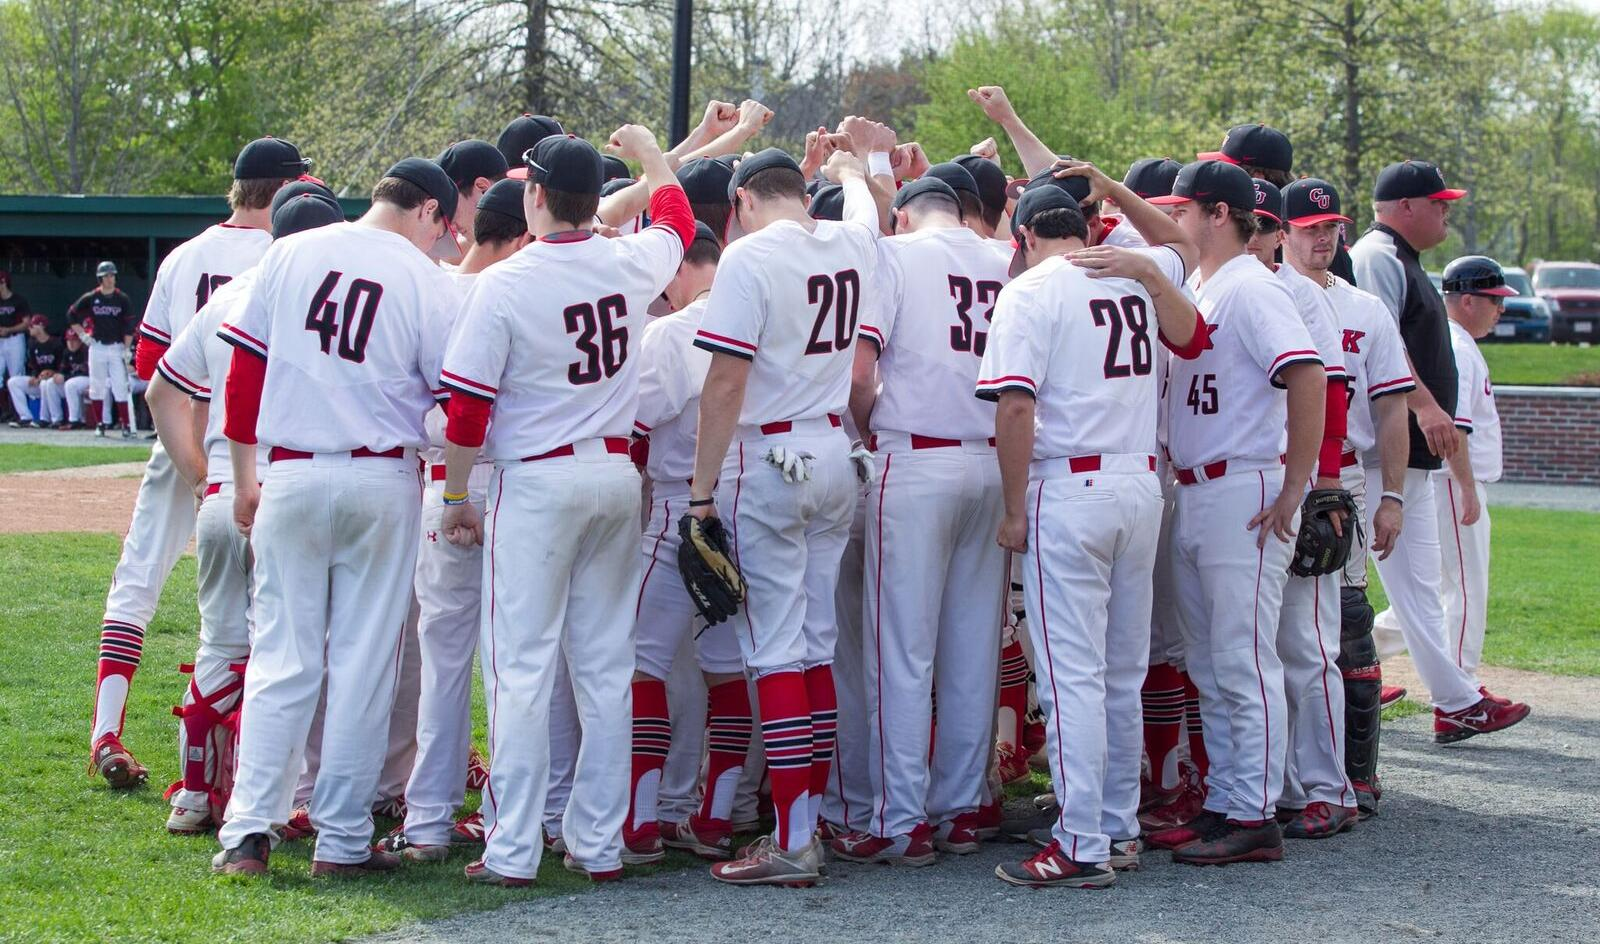 Clark falls to Wheaton in NEWMAC Tournament Finale